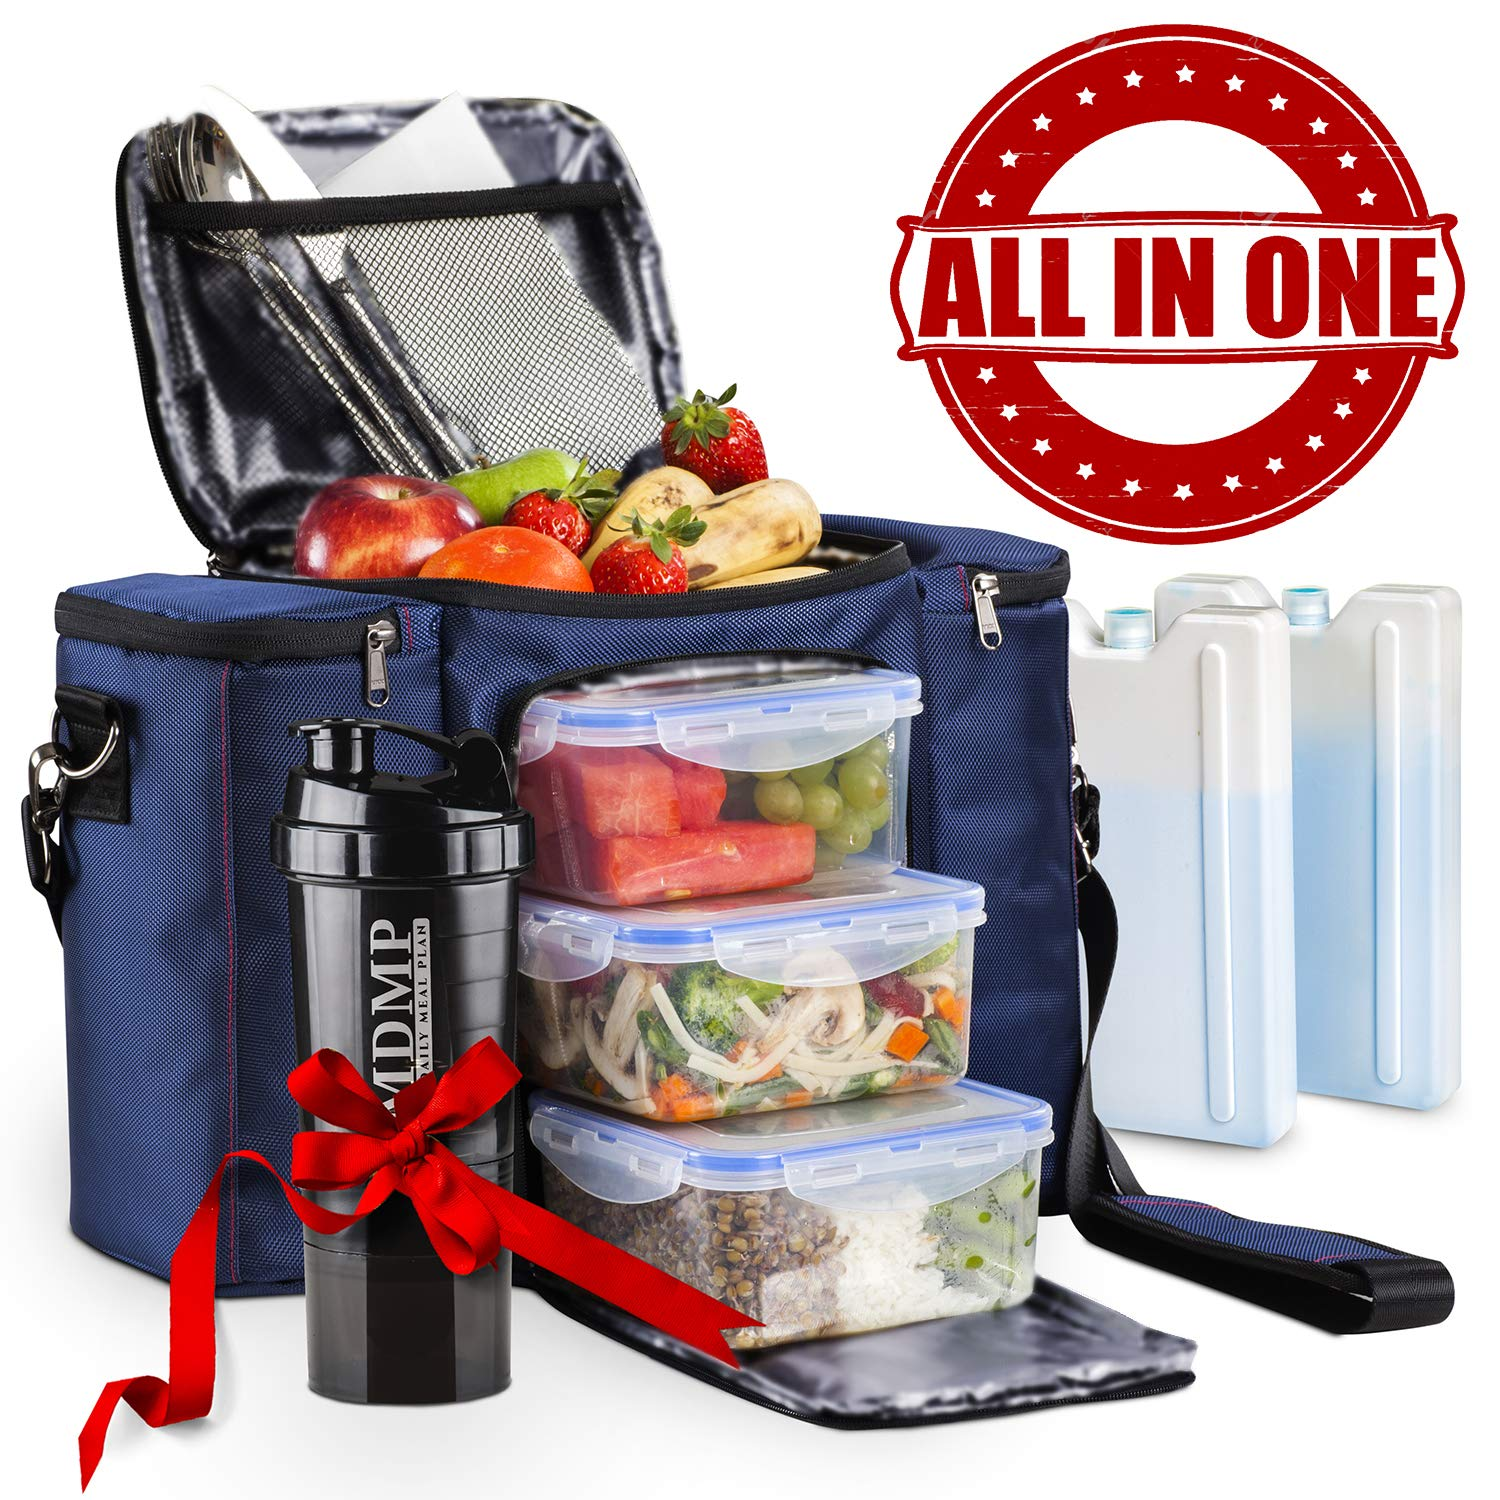 Meal Prep Lunch Bag / Box For Men, Women + 3 Large Food Containers (45 Oz.) + 2 Big Reusable Ice Packs + Shoulder Strap + Shaker With Storage. Insulated Lunchbox Cooler Tote. Adult Portion Control Set by MDMP - My Daily Meal Plan